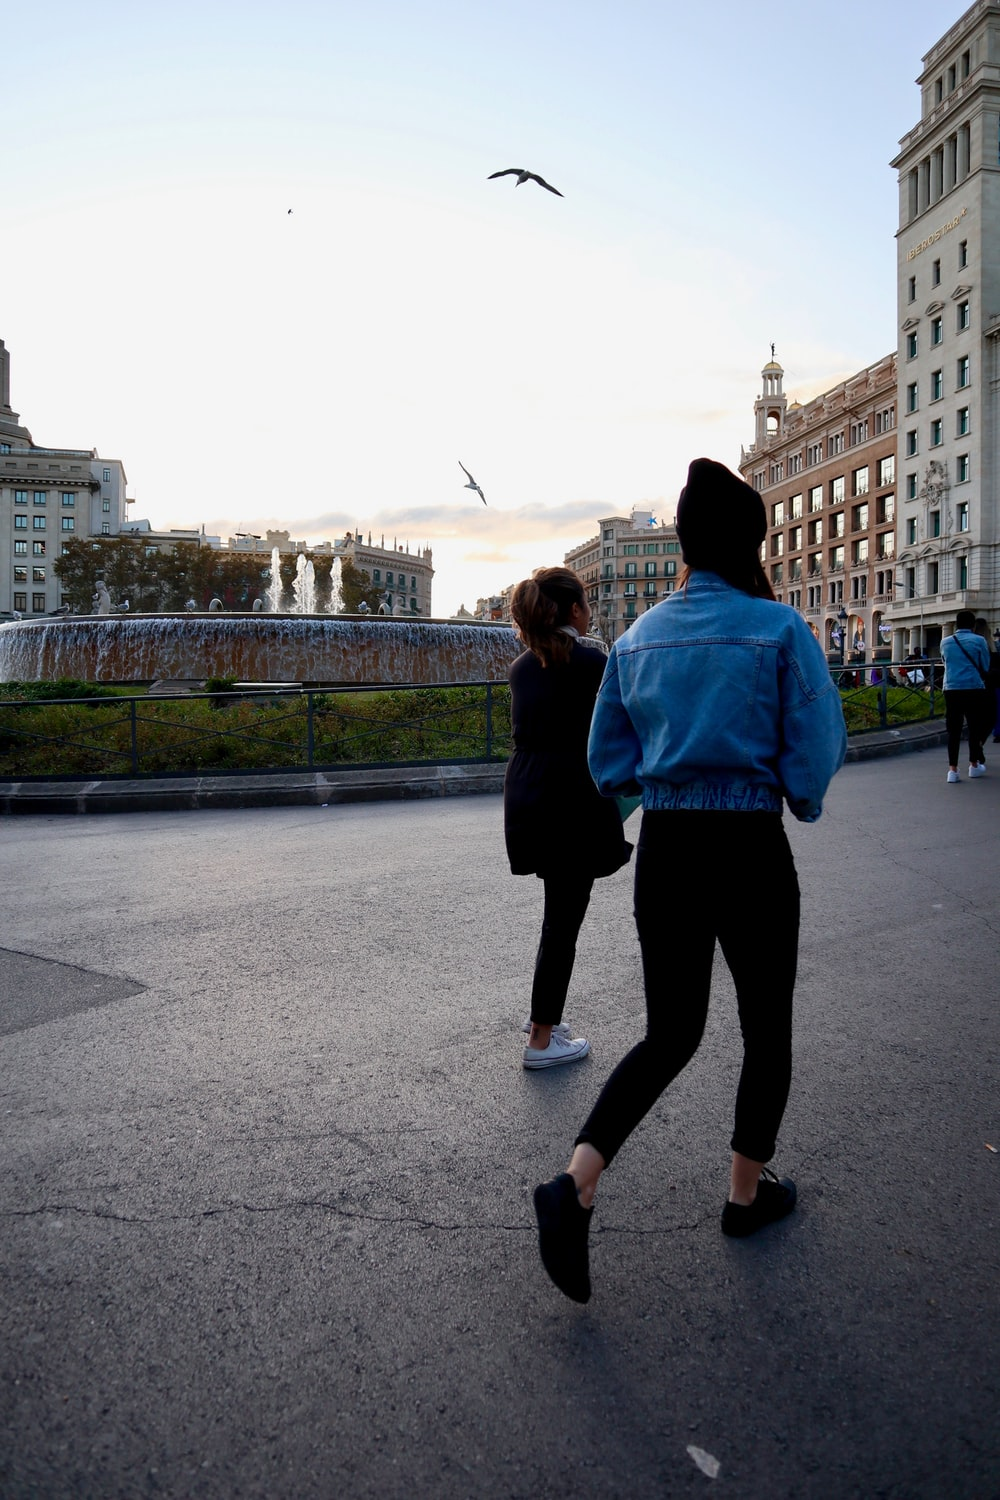 people walking near fountain and buildings during day